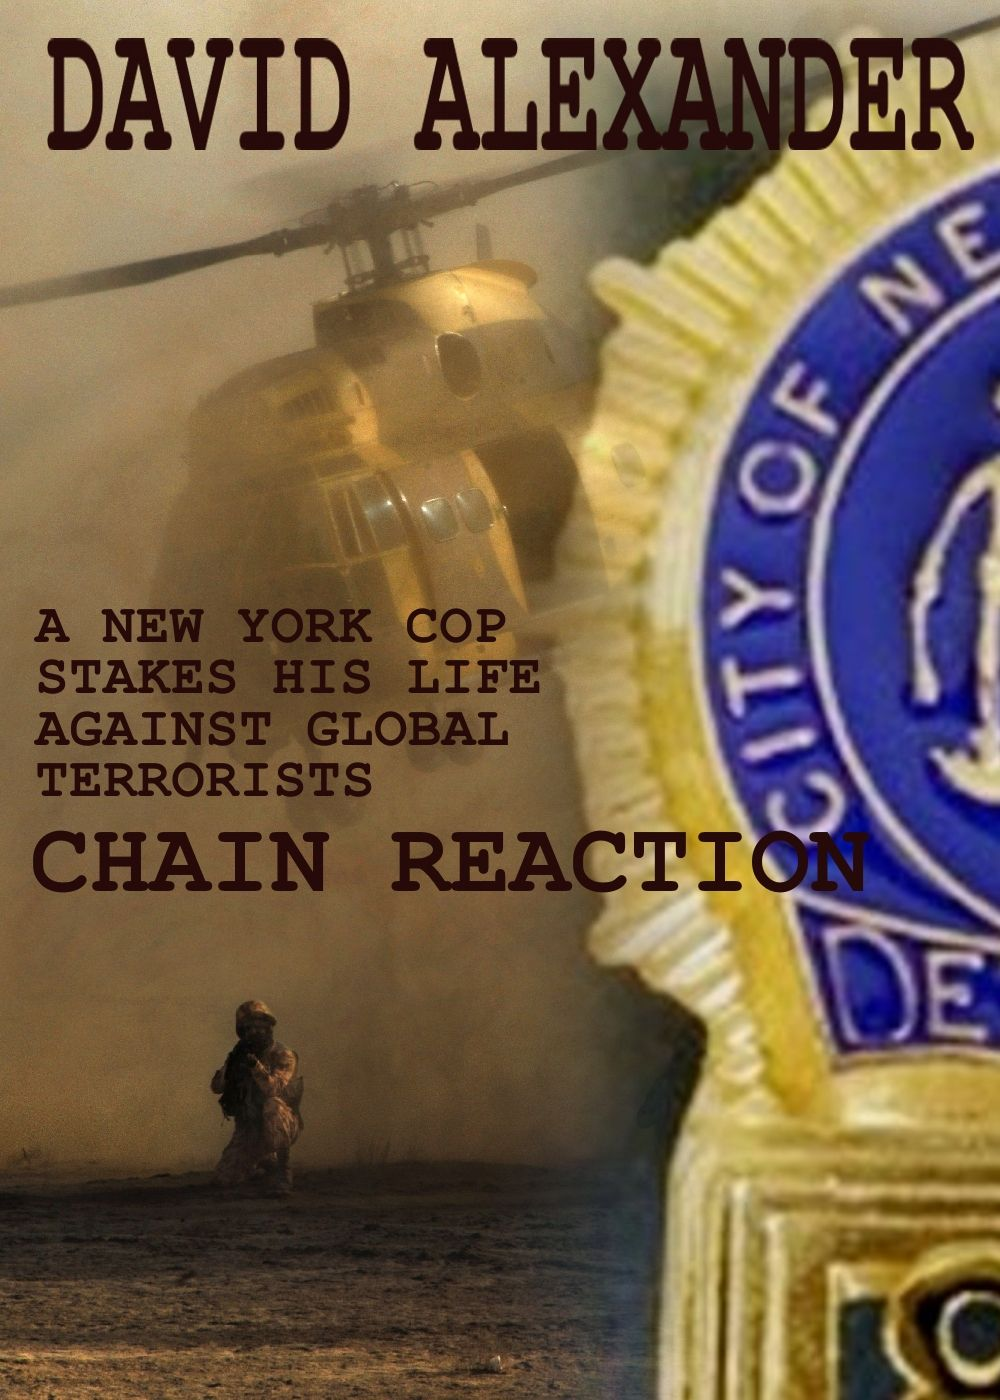 Read Chain Reaction on Kindle. In David Alexander's Chain Reaction, a driven NYPD detective goes after a master terrorist in a global chase that pits New York City street smarts against the deadly skills of the most dangerous man on earth.